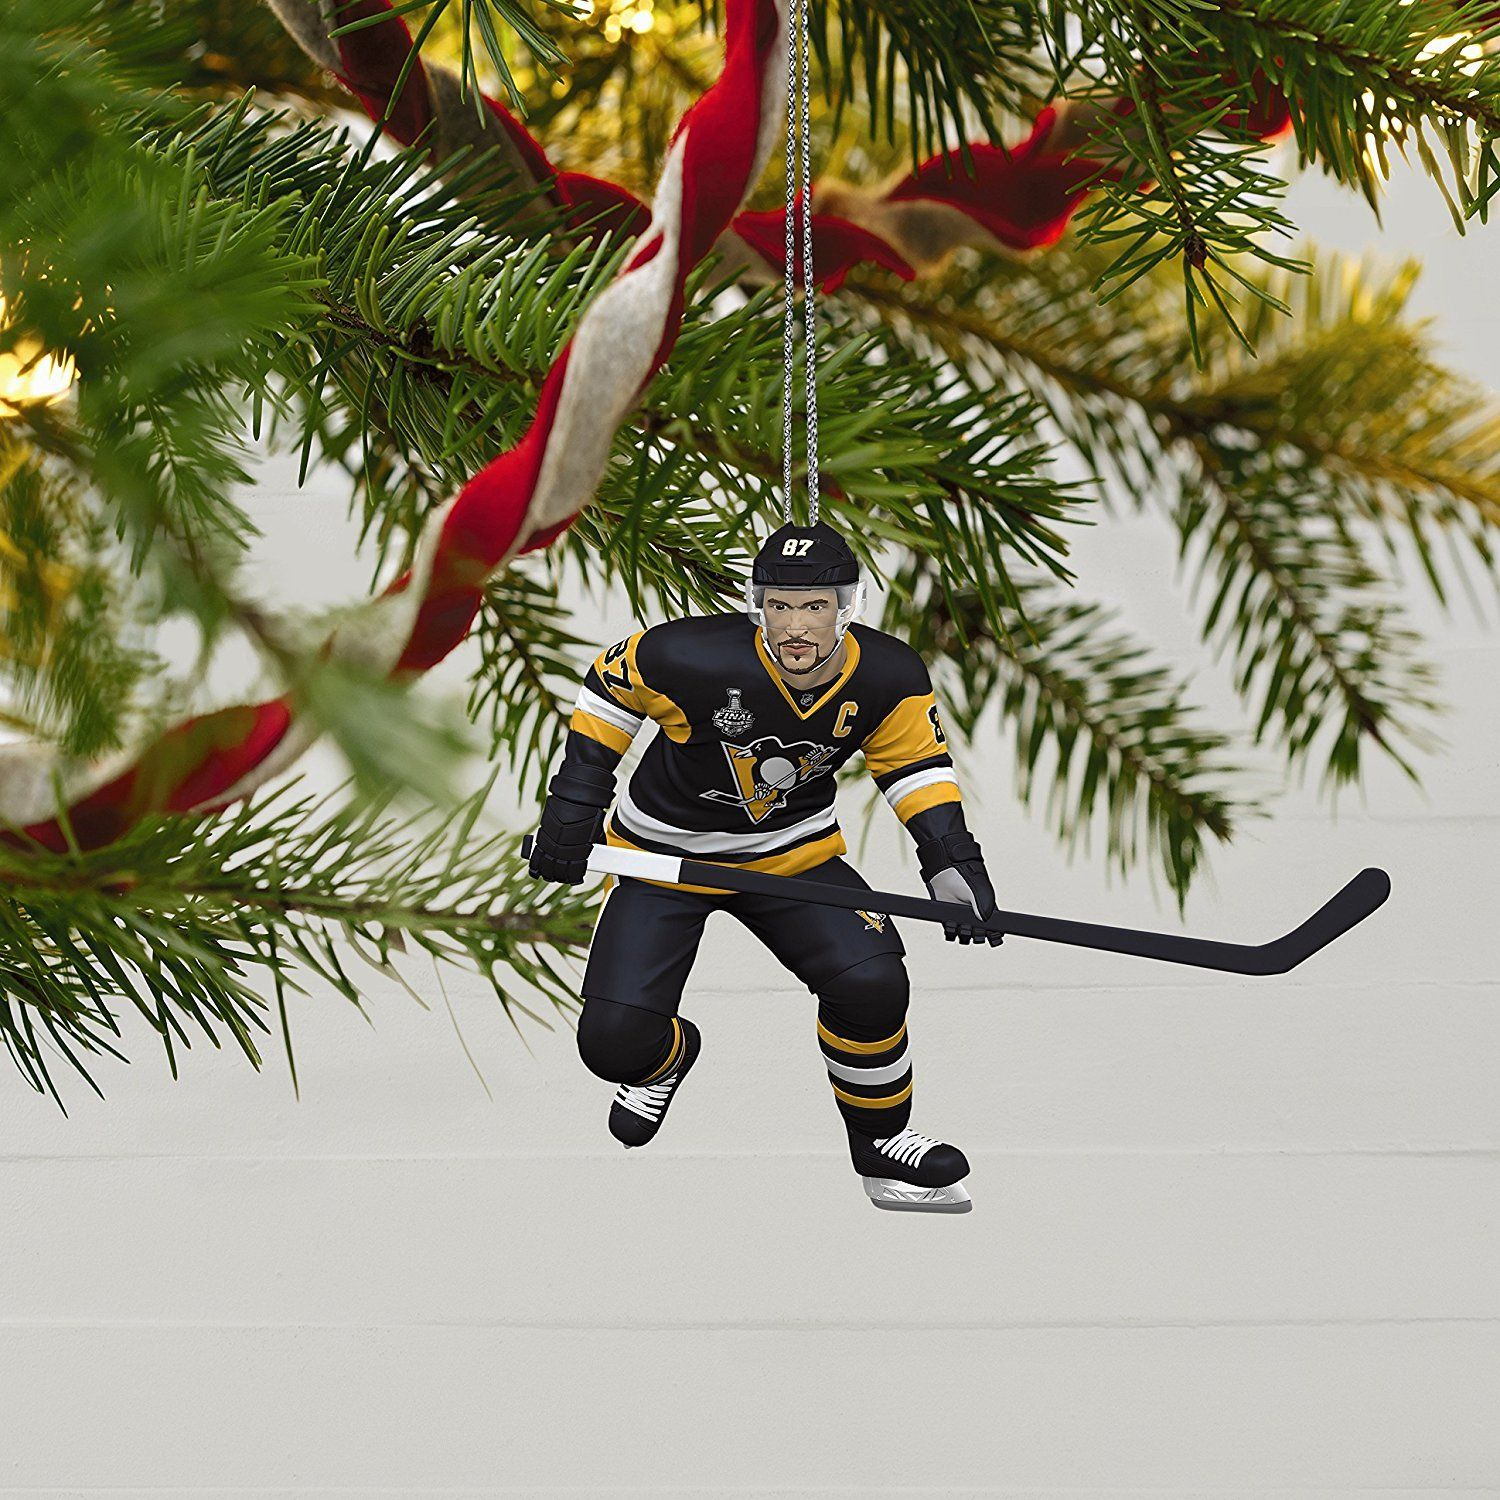 Sidney Crosby 2017 Pittsburgh Penguins Hallmark Ornament ...